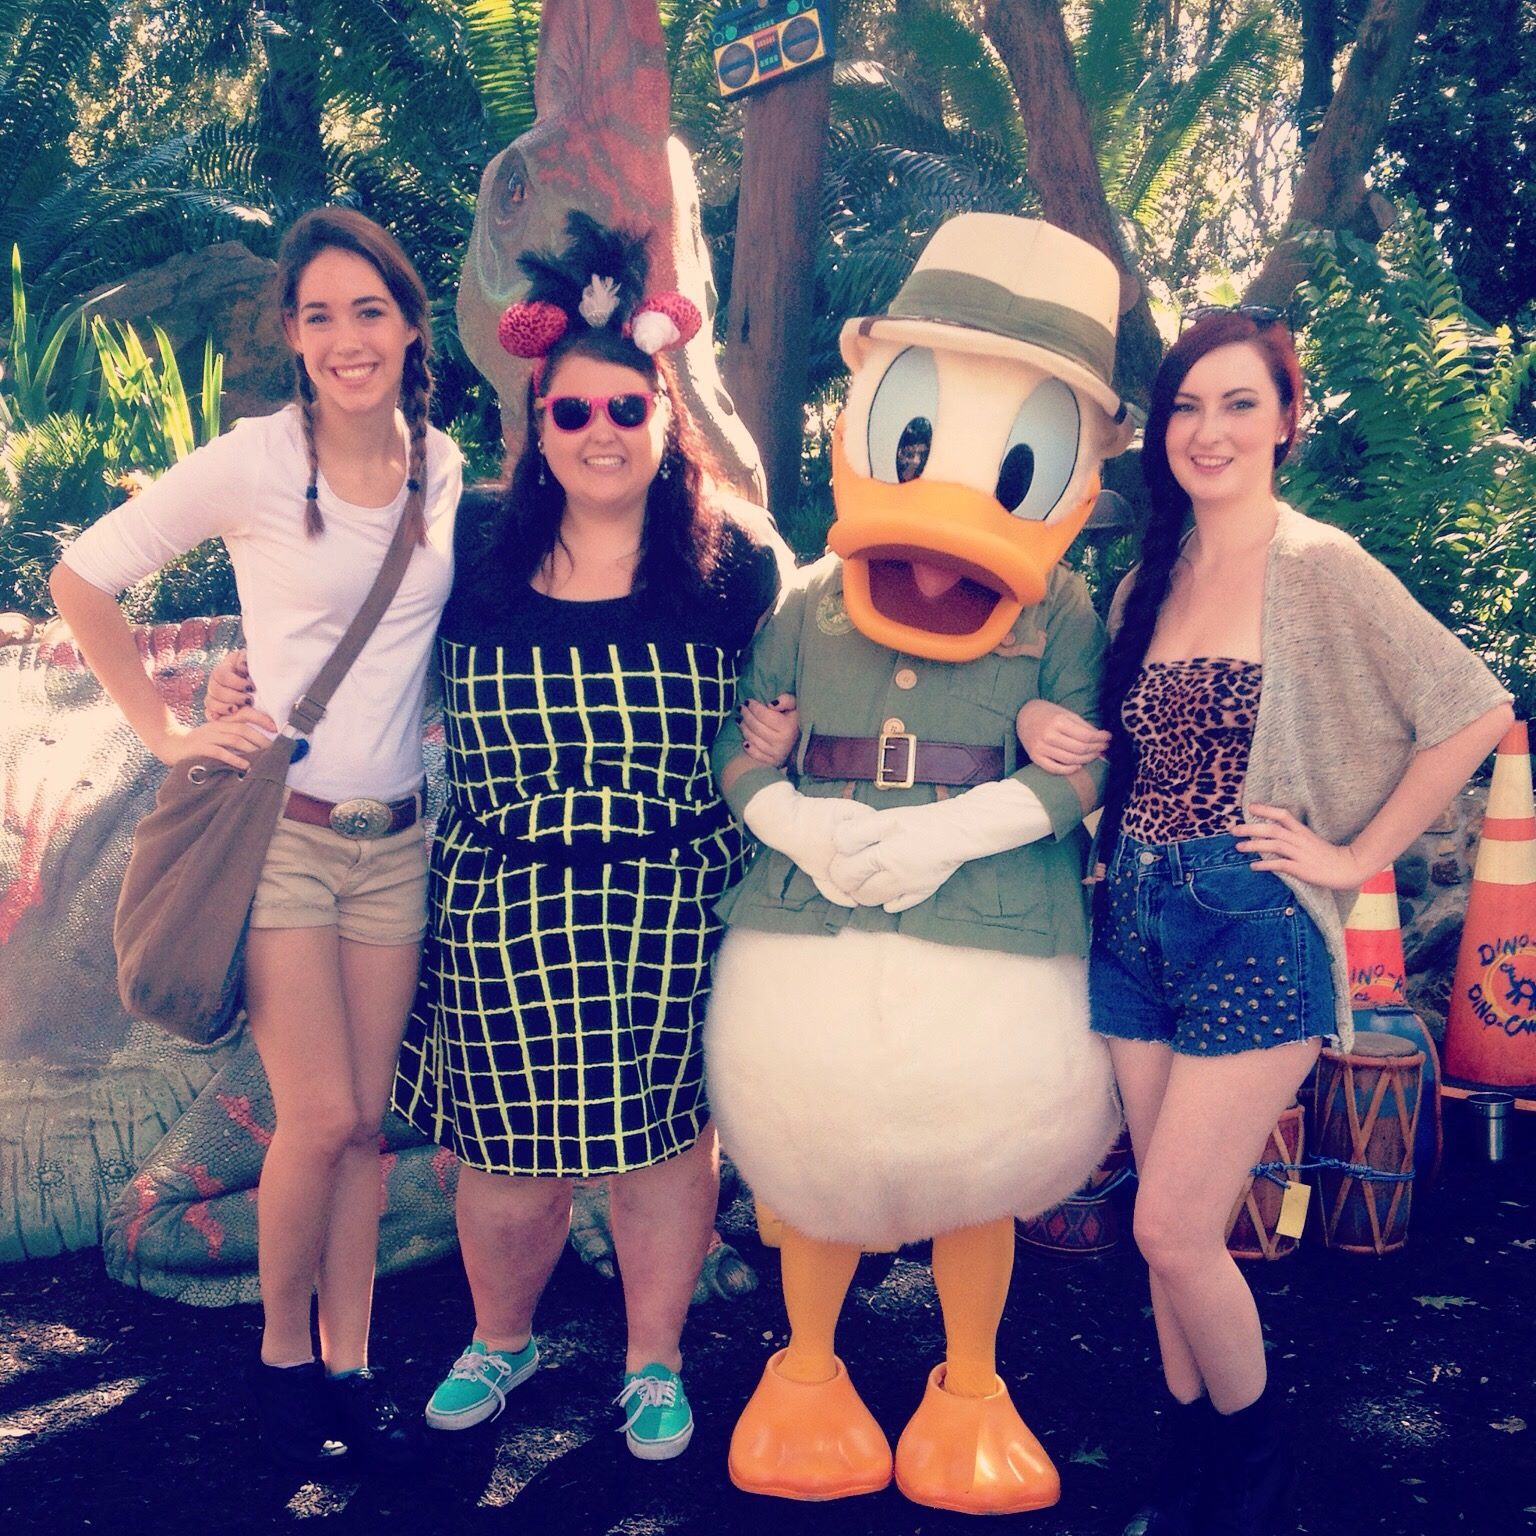 Jordana Grace (in the green and black dress) with friends and Donald Duck at Disney World, Orlando